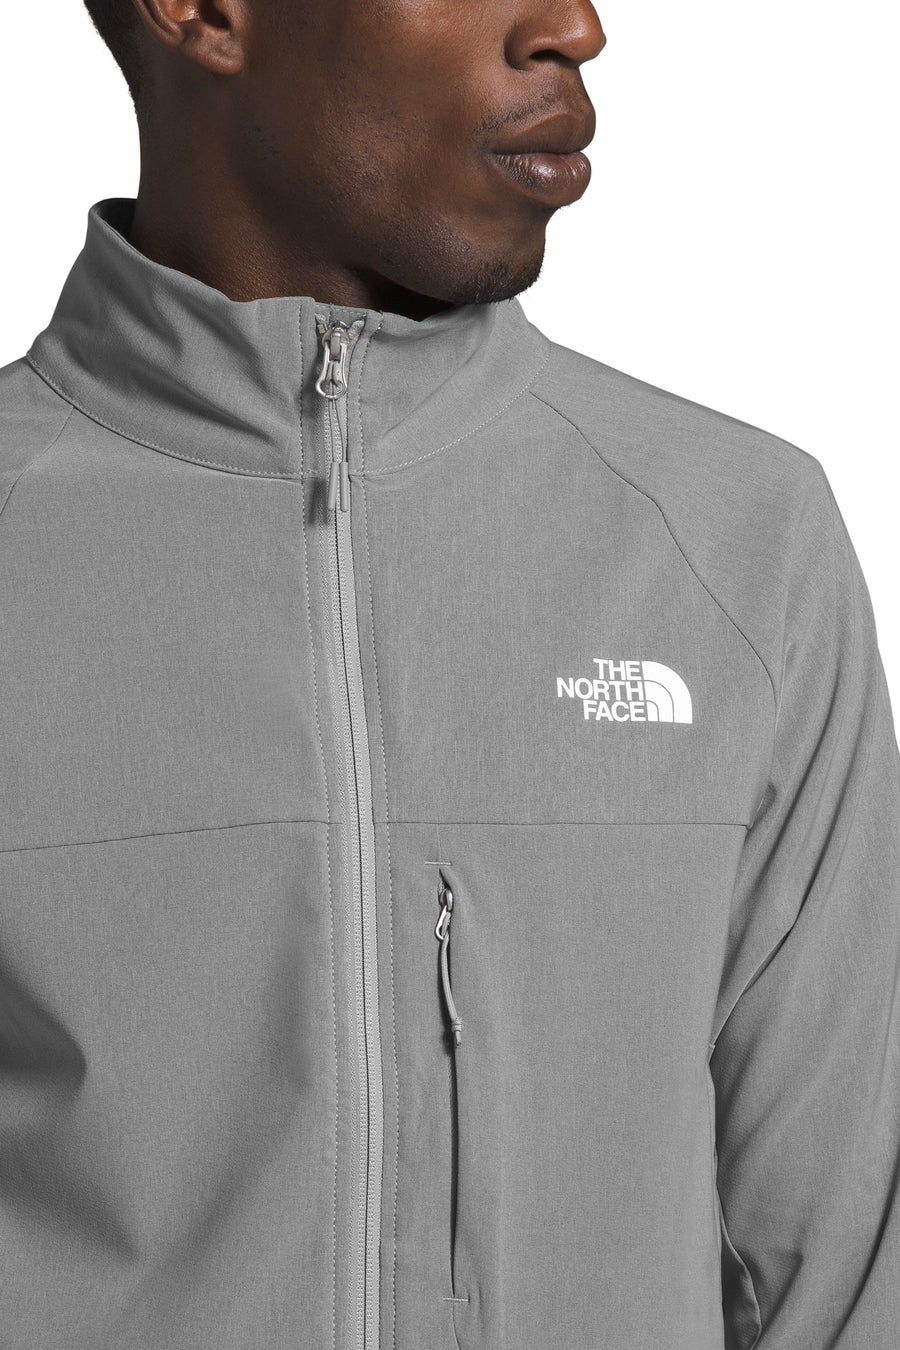 The North Face M Apex Nimble Jacket